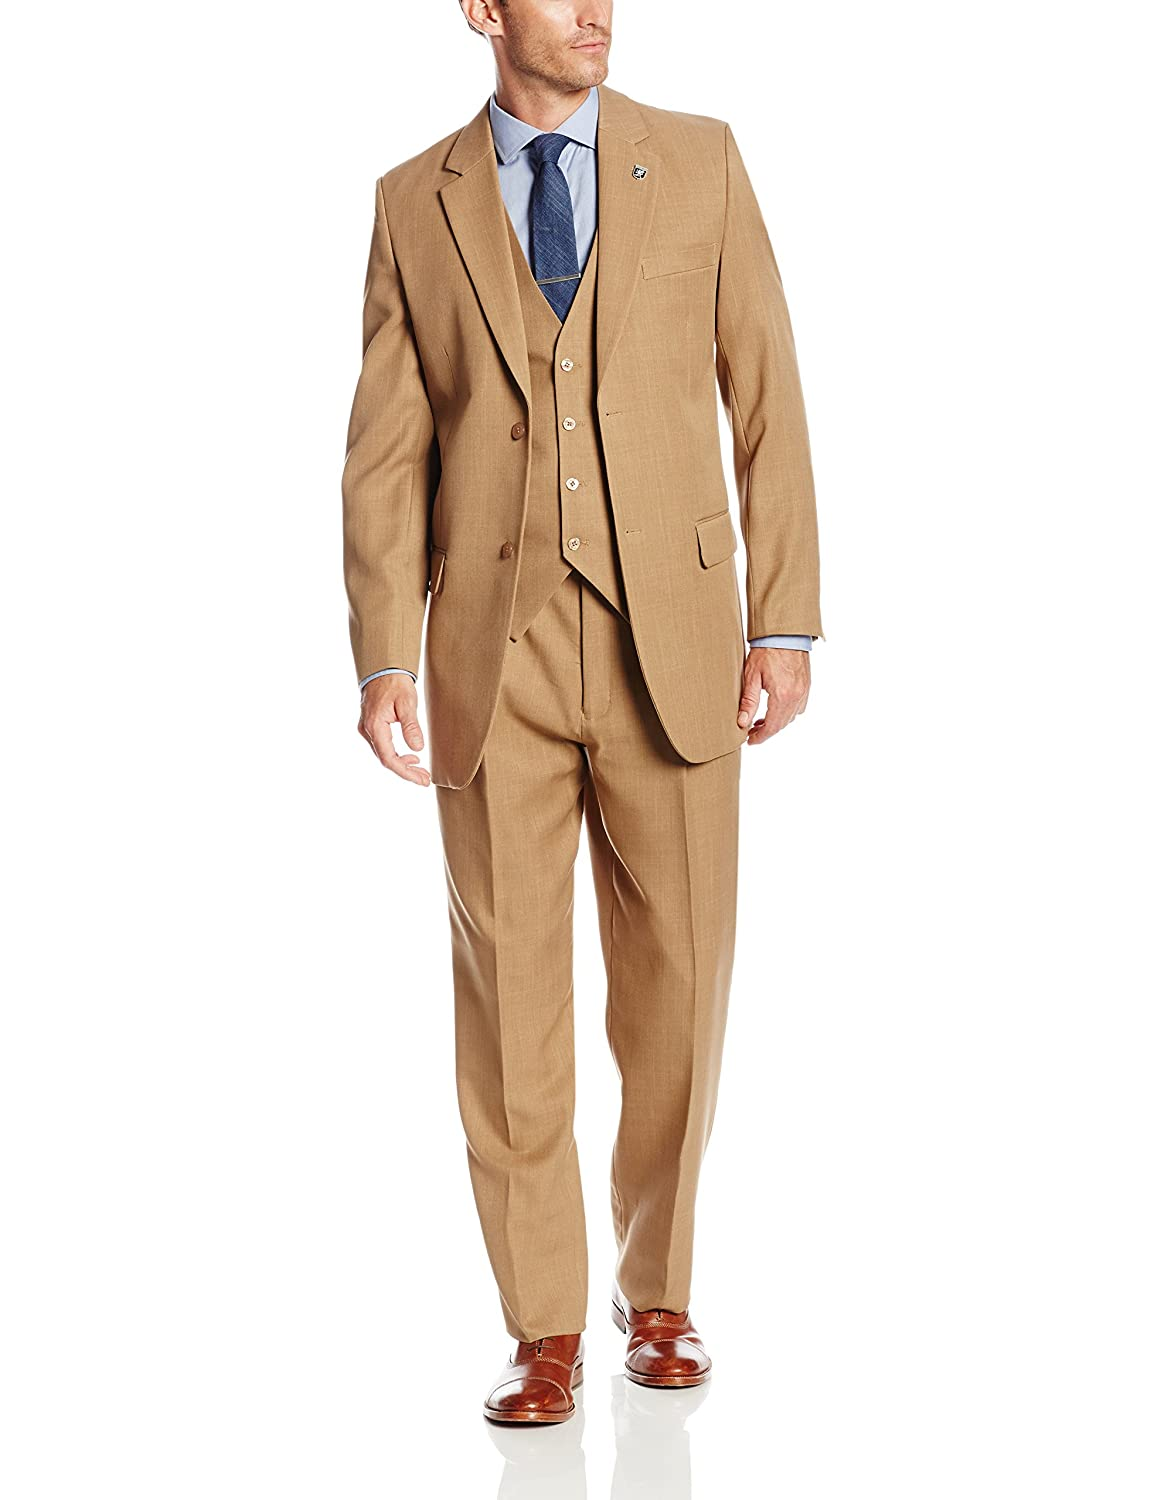 Stacy Adams Men's Big & Tall Suny Vested Three-Piece Suit Stacy Adams Tailored 4016BT